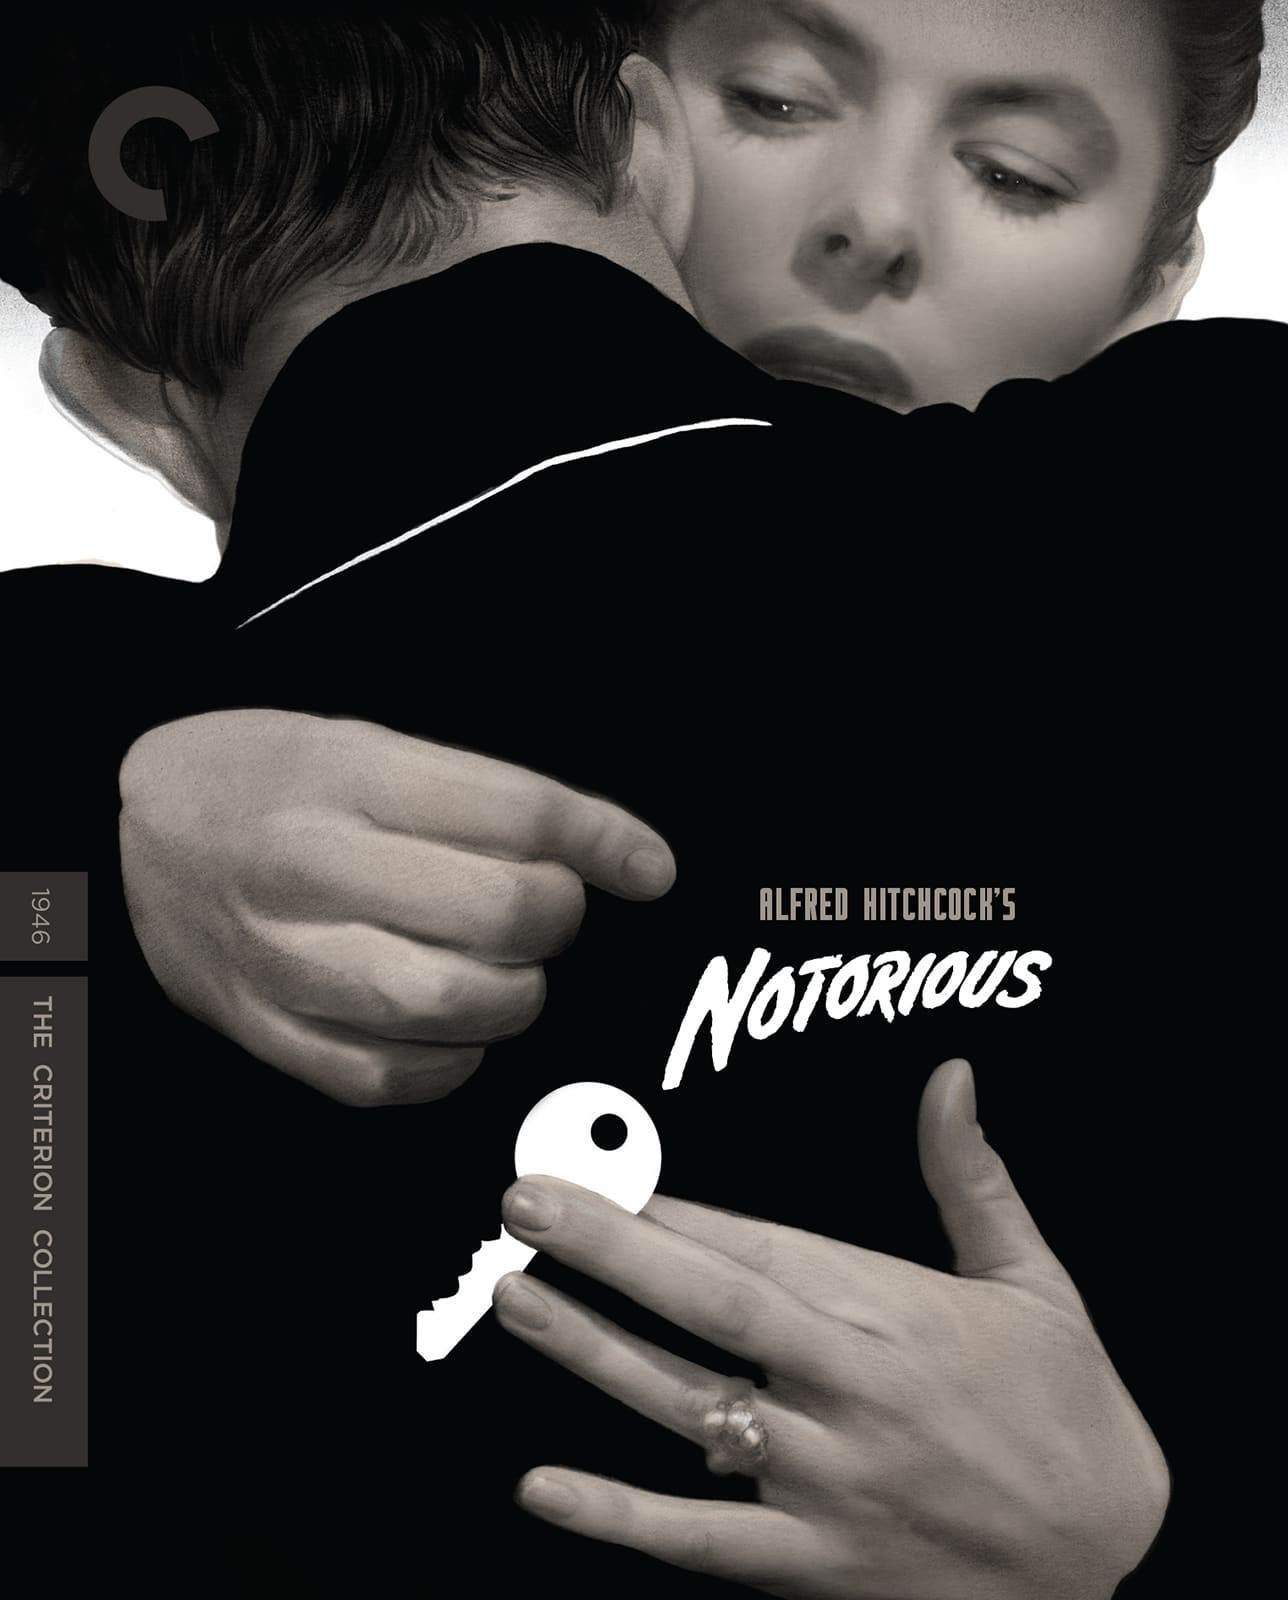 Notorious (The Criterion Collection)(Blu-ray)(Region A)